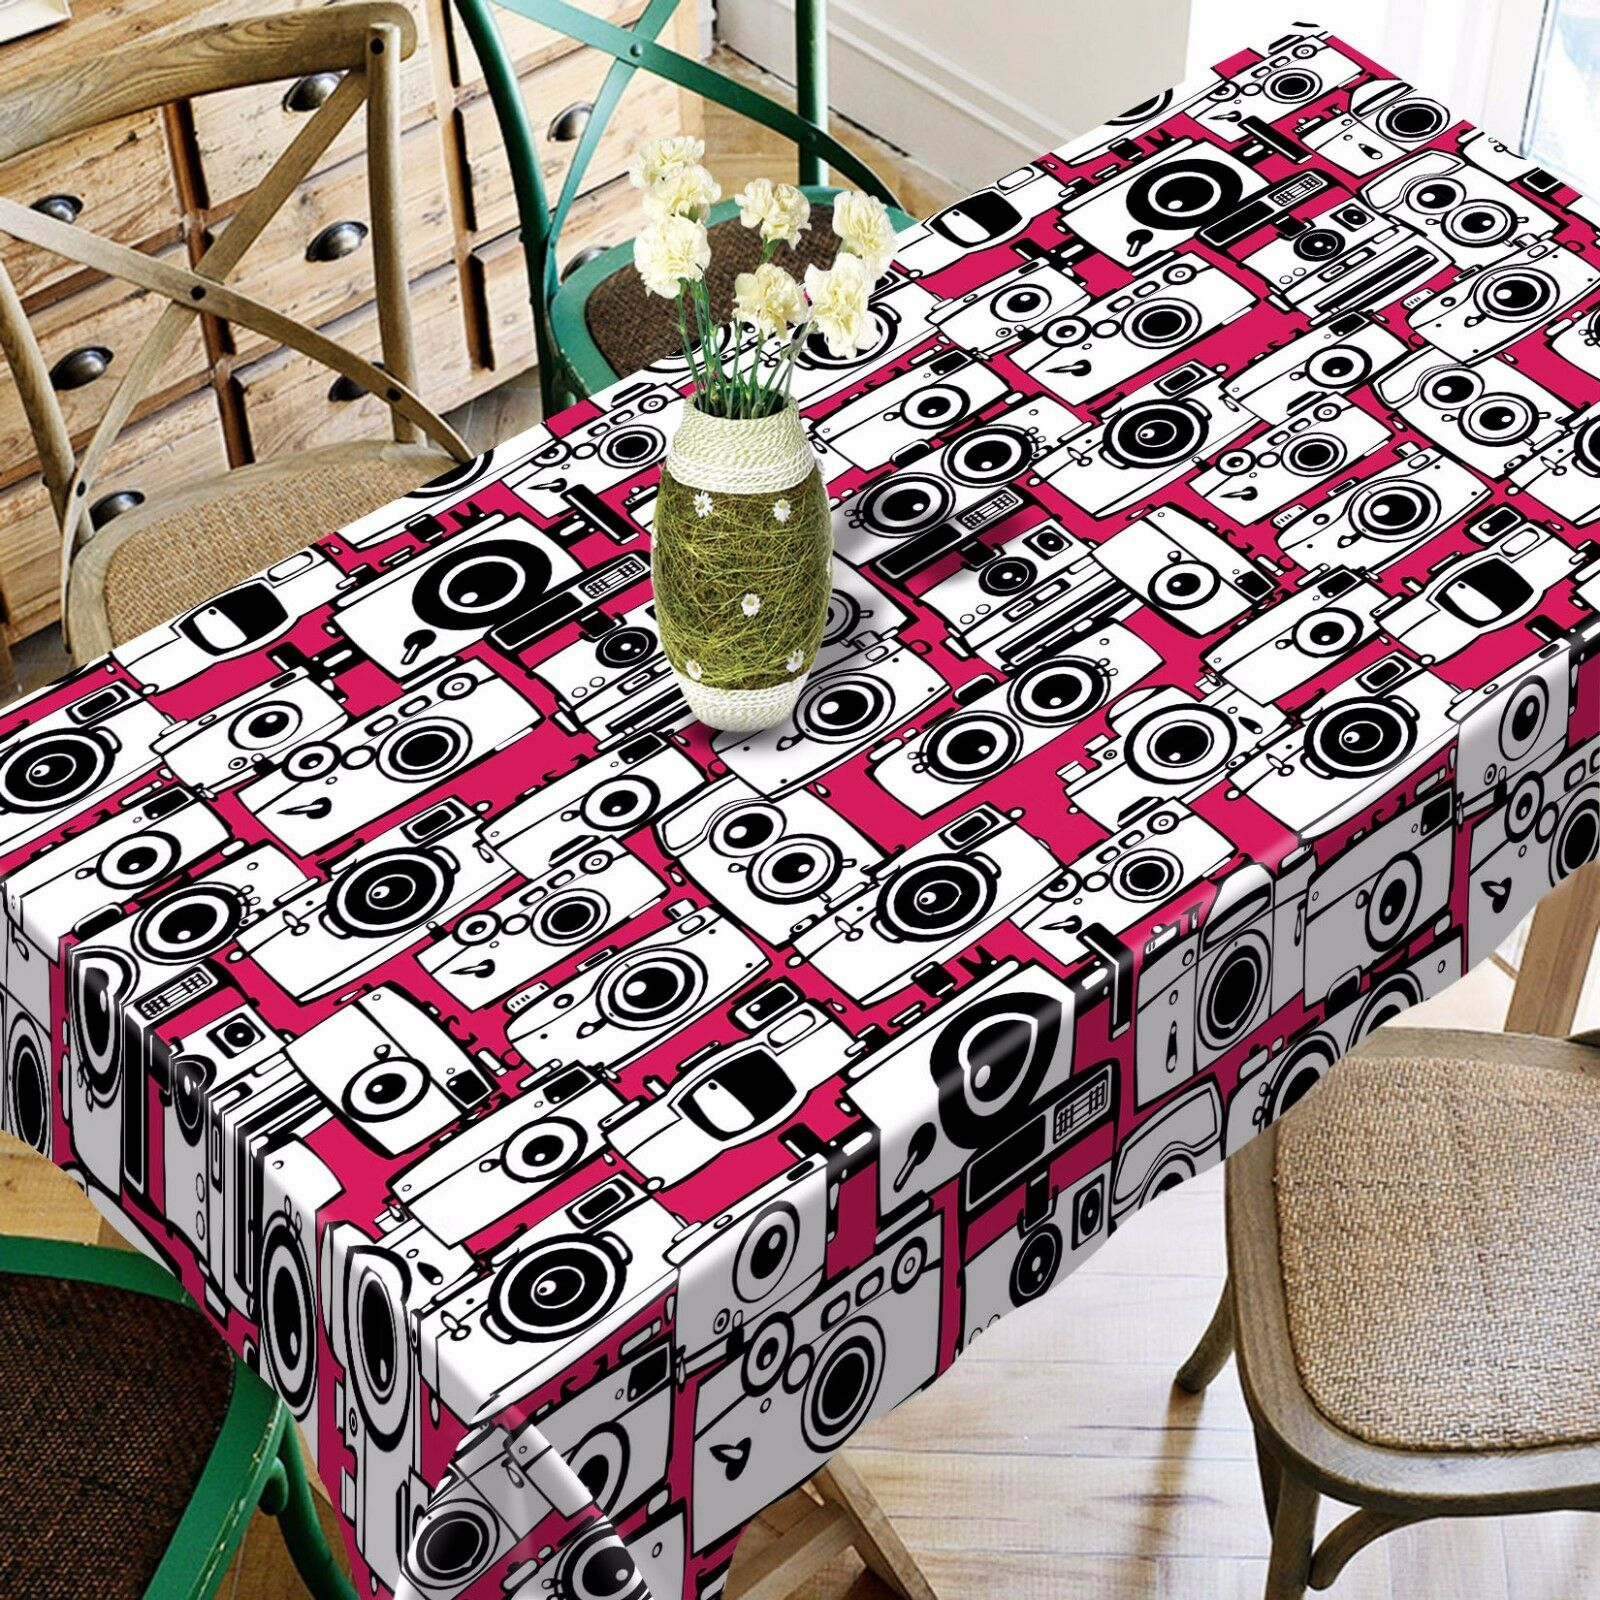 3D Camera Pattern Tablecloth Table Cover Cloth Birthday Party Event AJ WALLPAPER